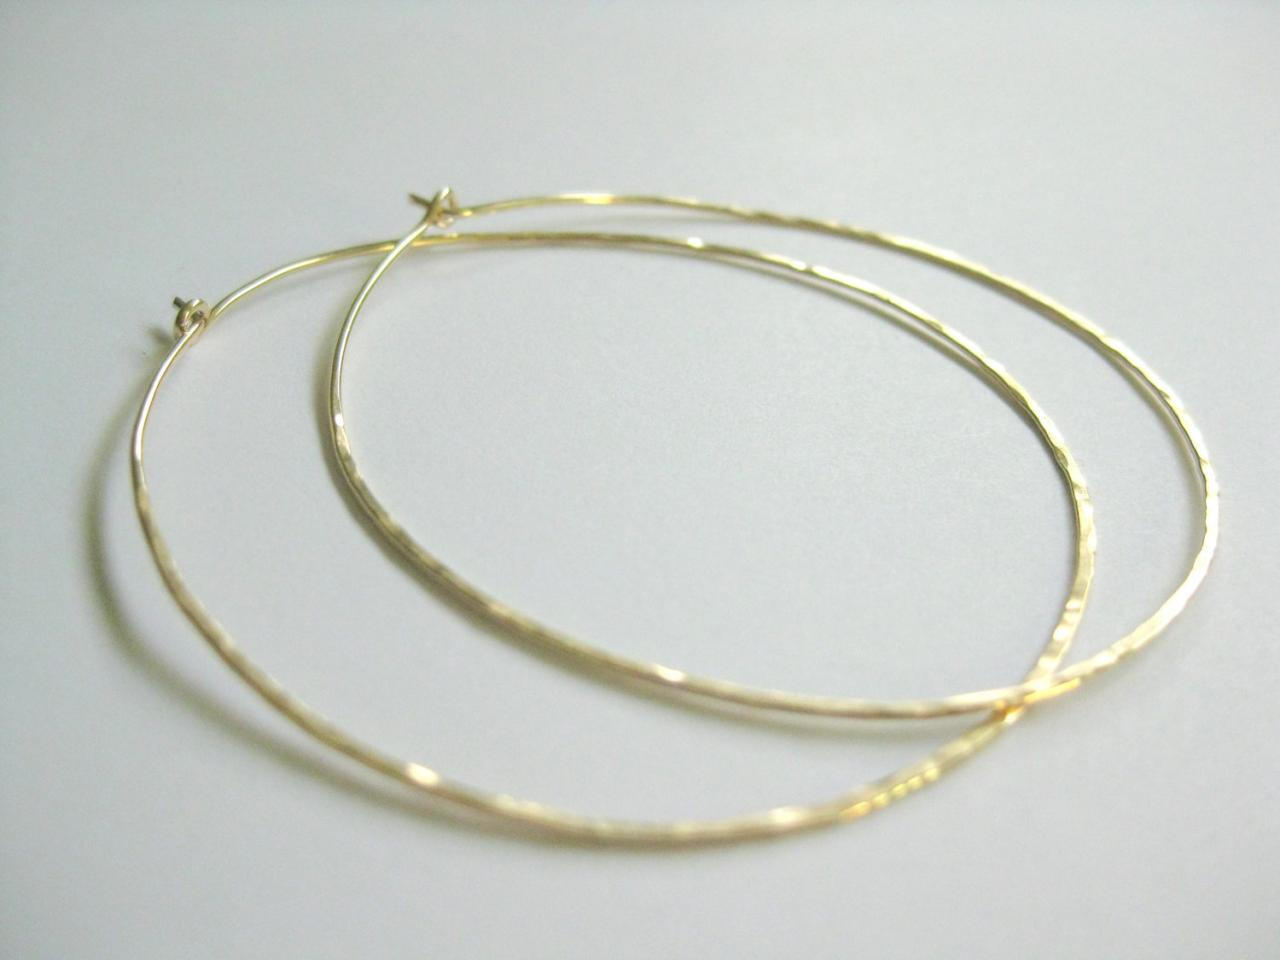 Thin Hammered Gold Hoop Earrings Large 14k Filled Hoops